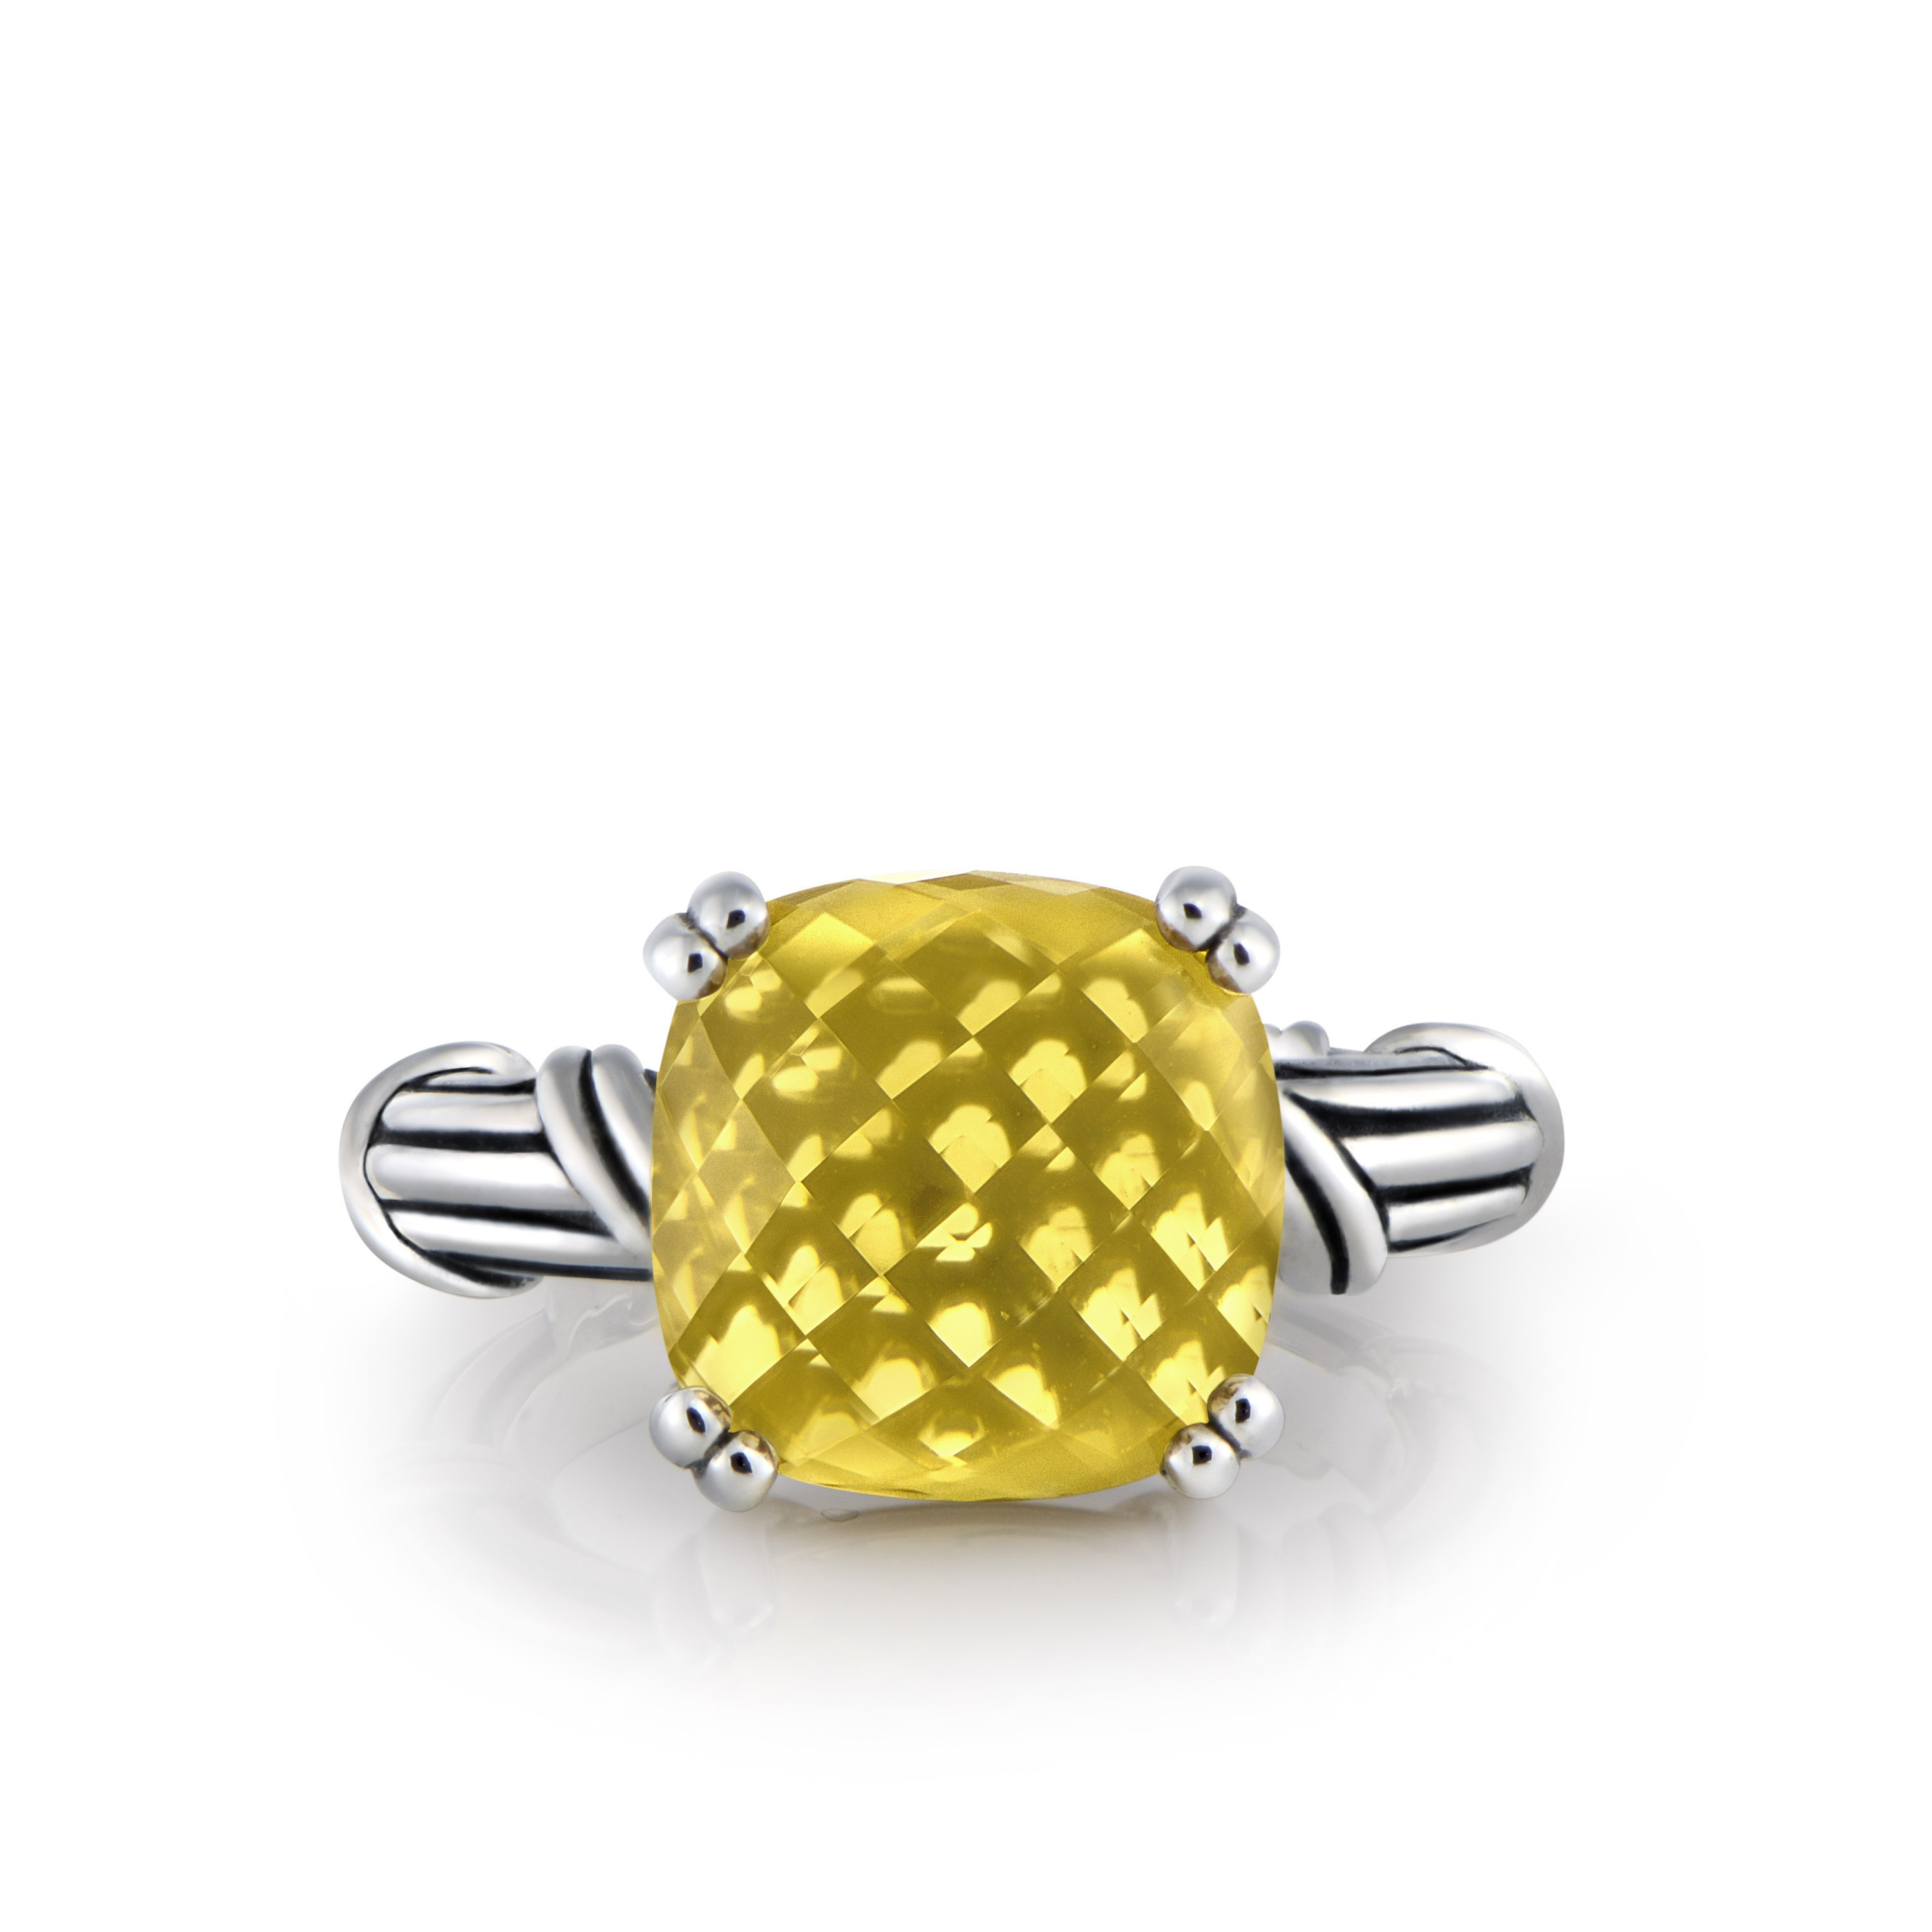 Fantasies Citrine Cocktail Ring in sterling silver